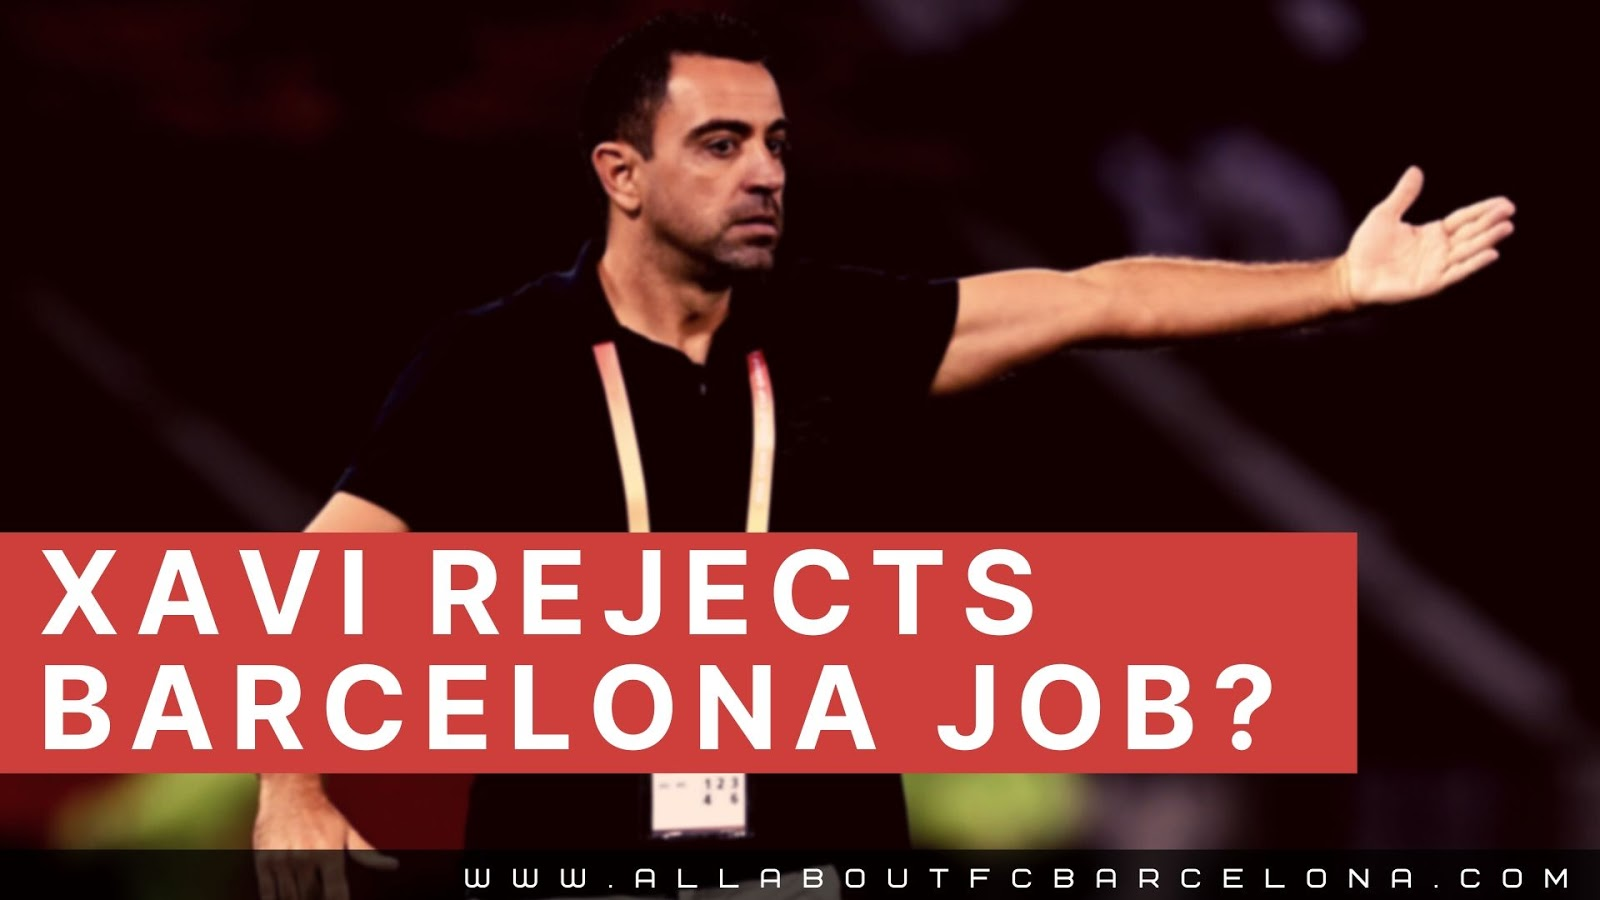 Xavi Says Not to Barca Job? May be Forever! #Barca #Xavi